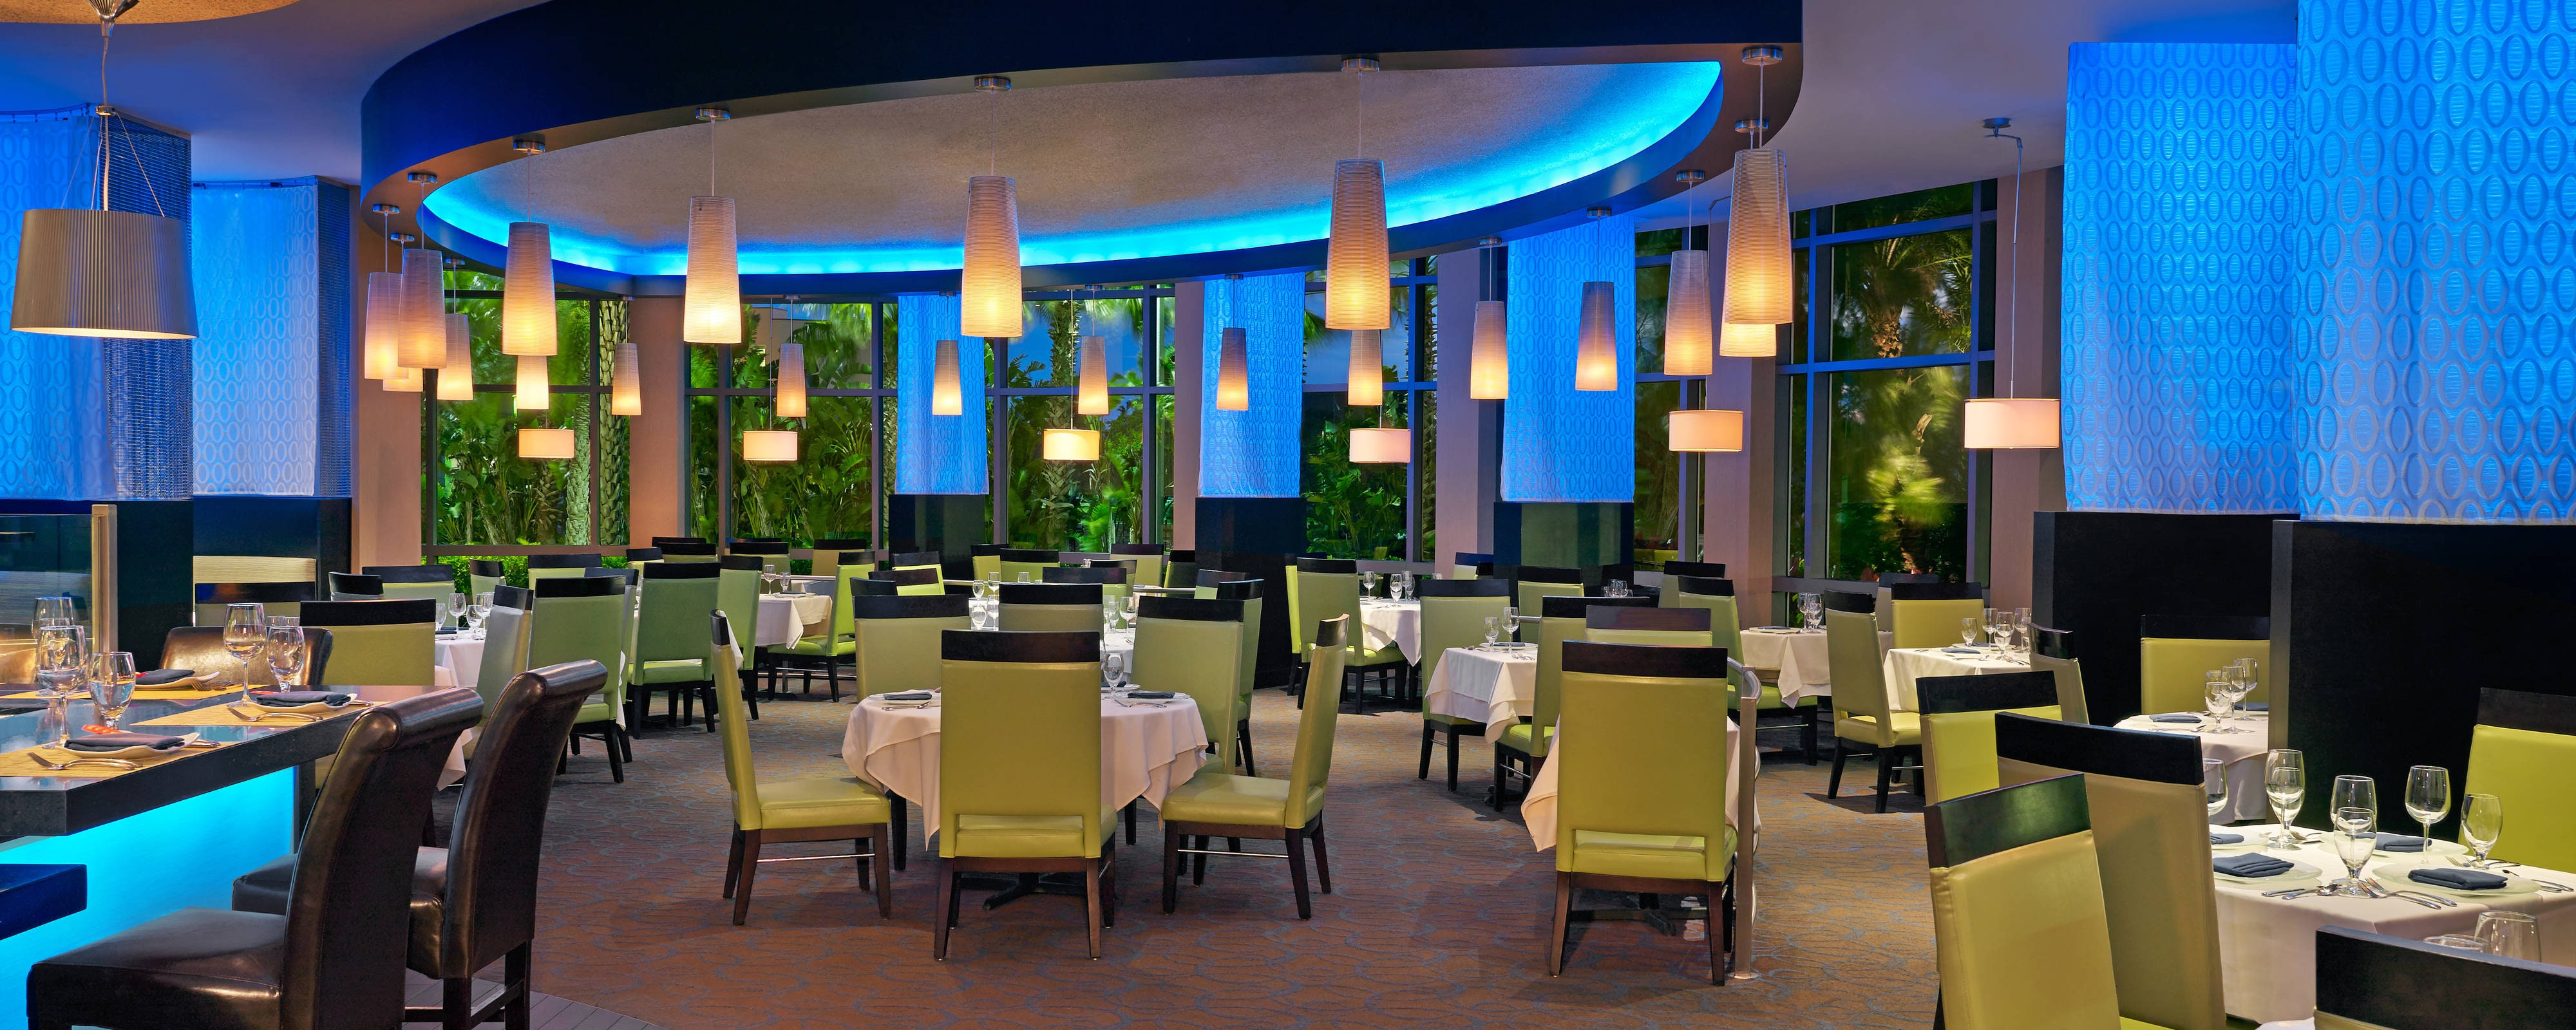 Tampa Bay Seafood Restaurants And Hotels The Westin Tampa Bay